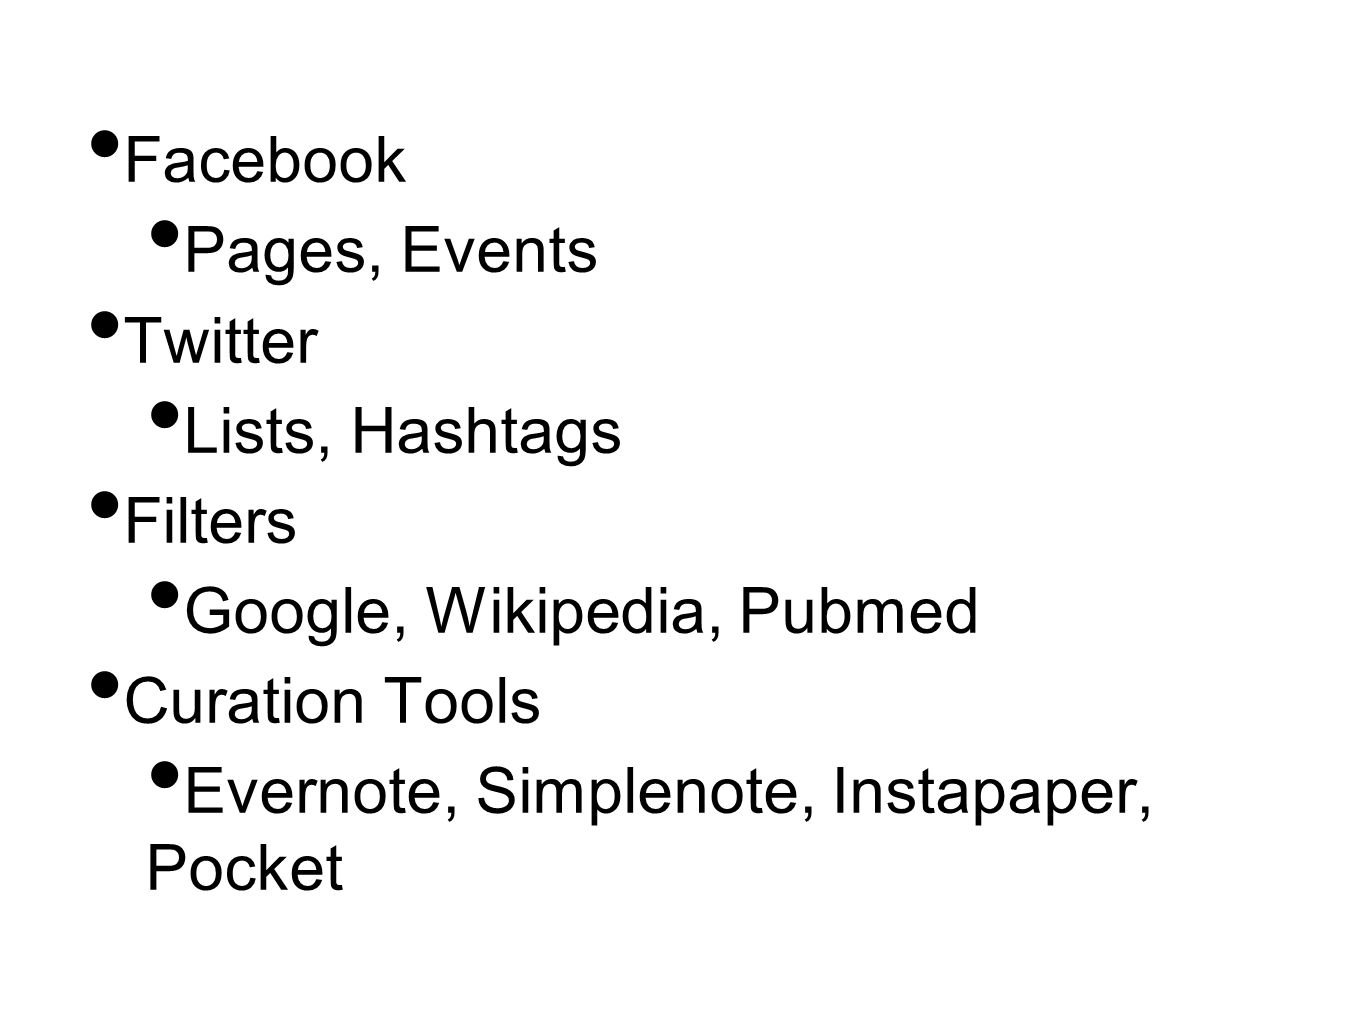 Facebook Pages, Events Twitter Lists, Hashtags Filters Google, Wikipedia, Pubmed Curation Tools Evernote, Simplenote, Instapaper, Pocket